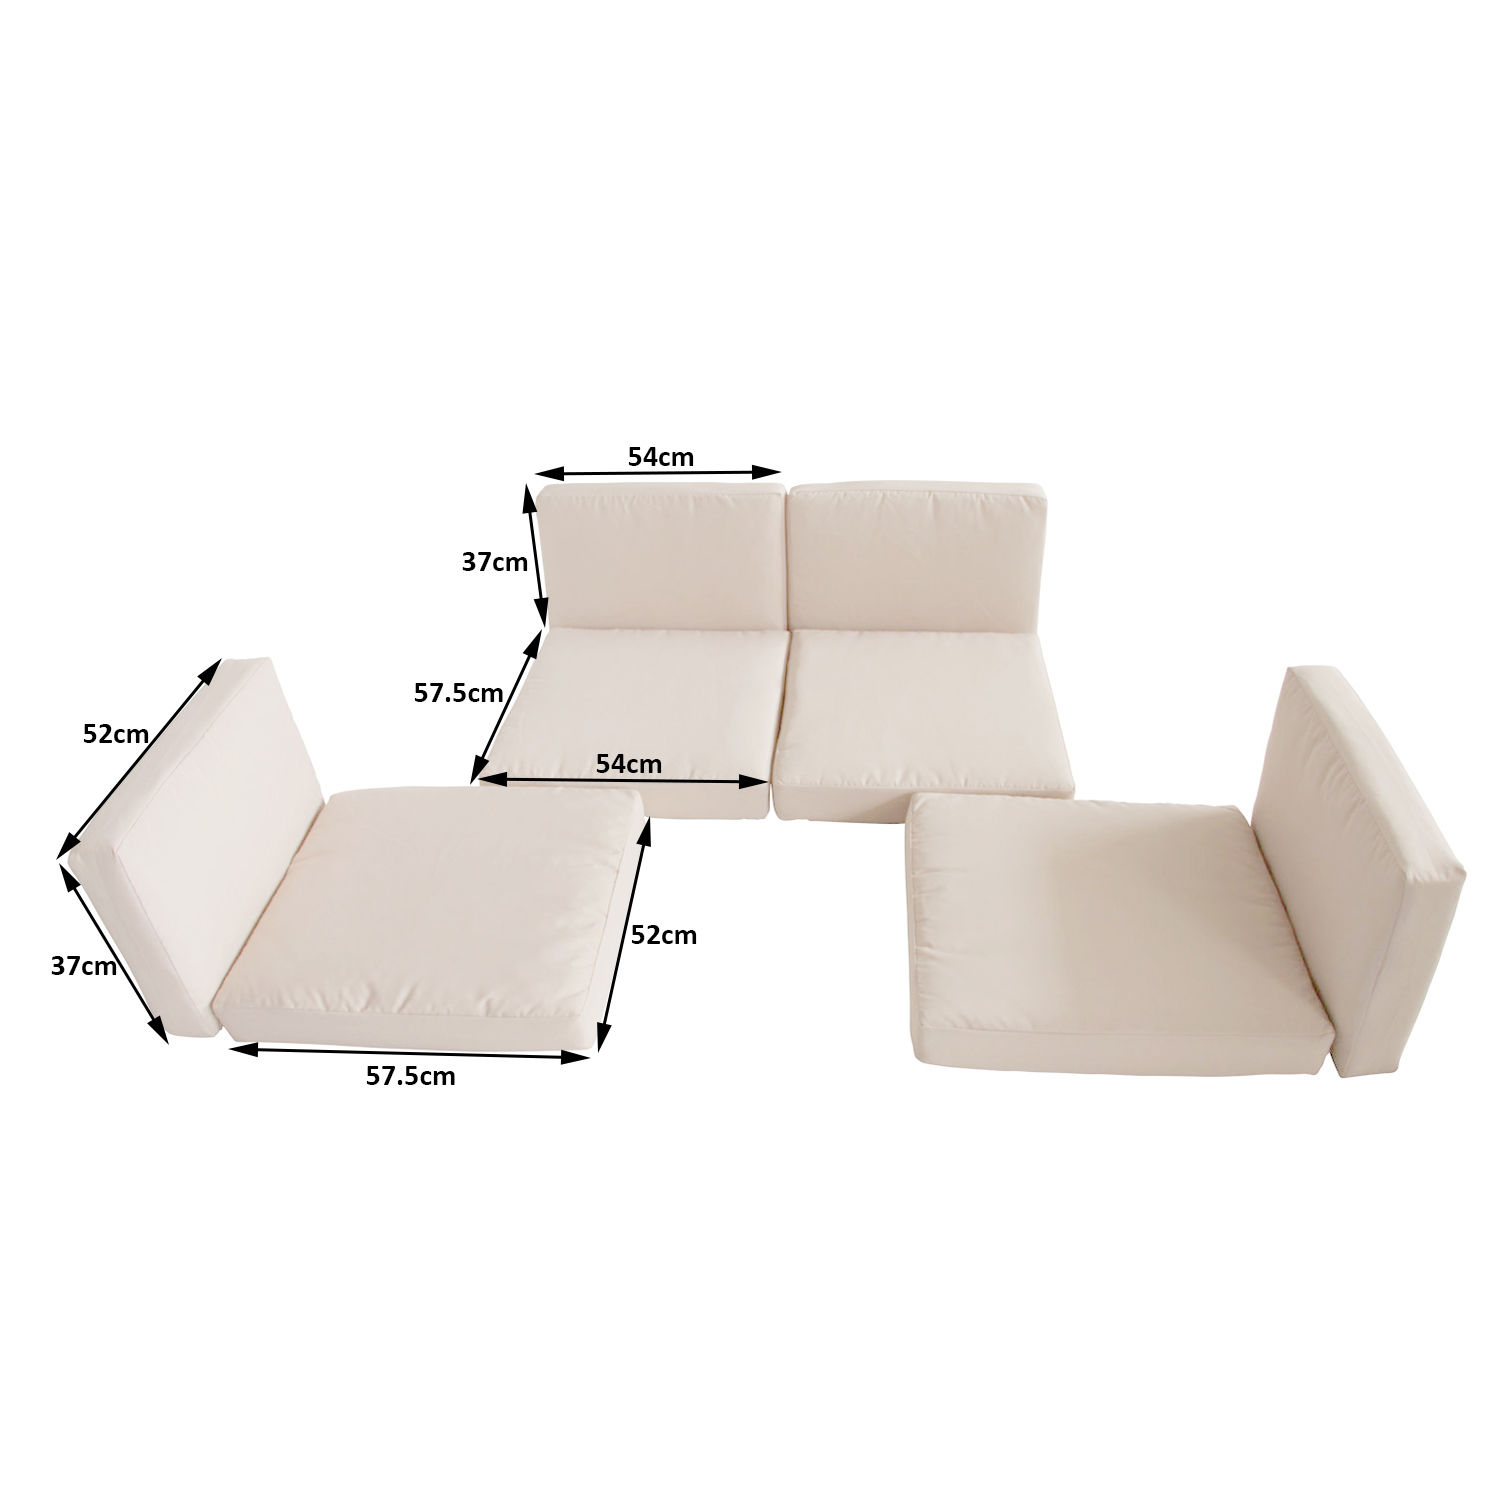 Rattan Corner Sofa Replacement Cushions Details About Outsunny 8pc Home Sofa Cushion Cover Replacement For Rattan Garden Furniture